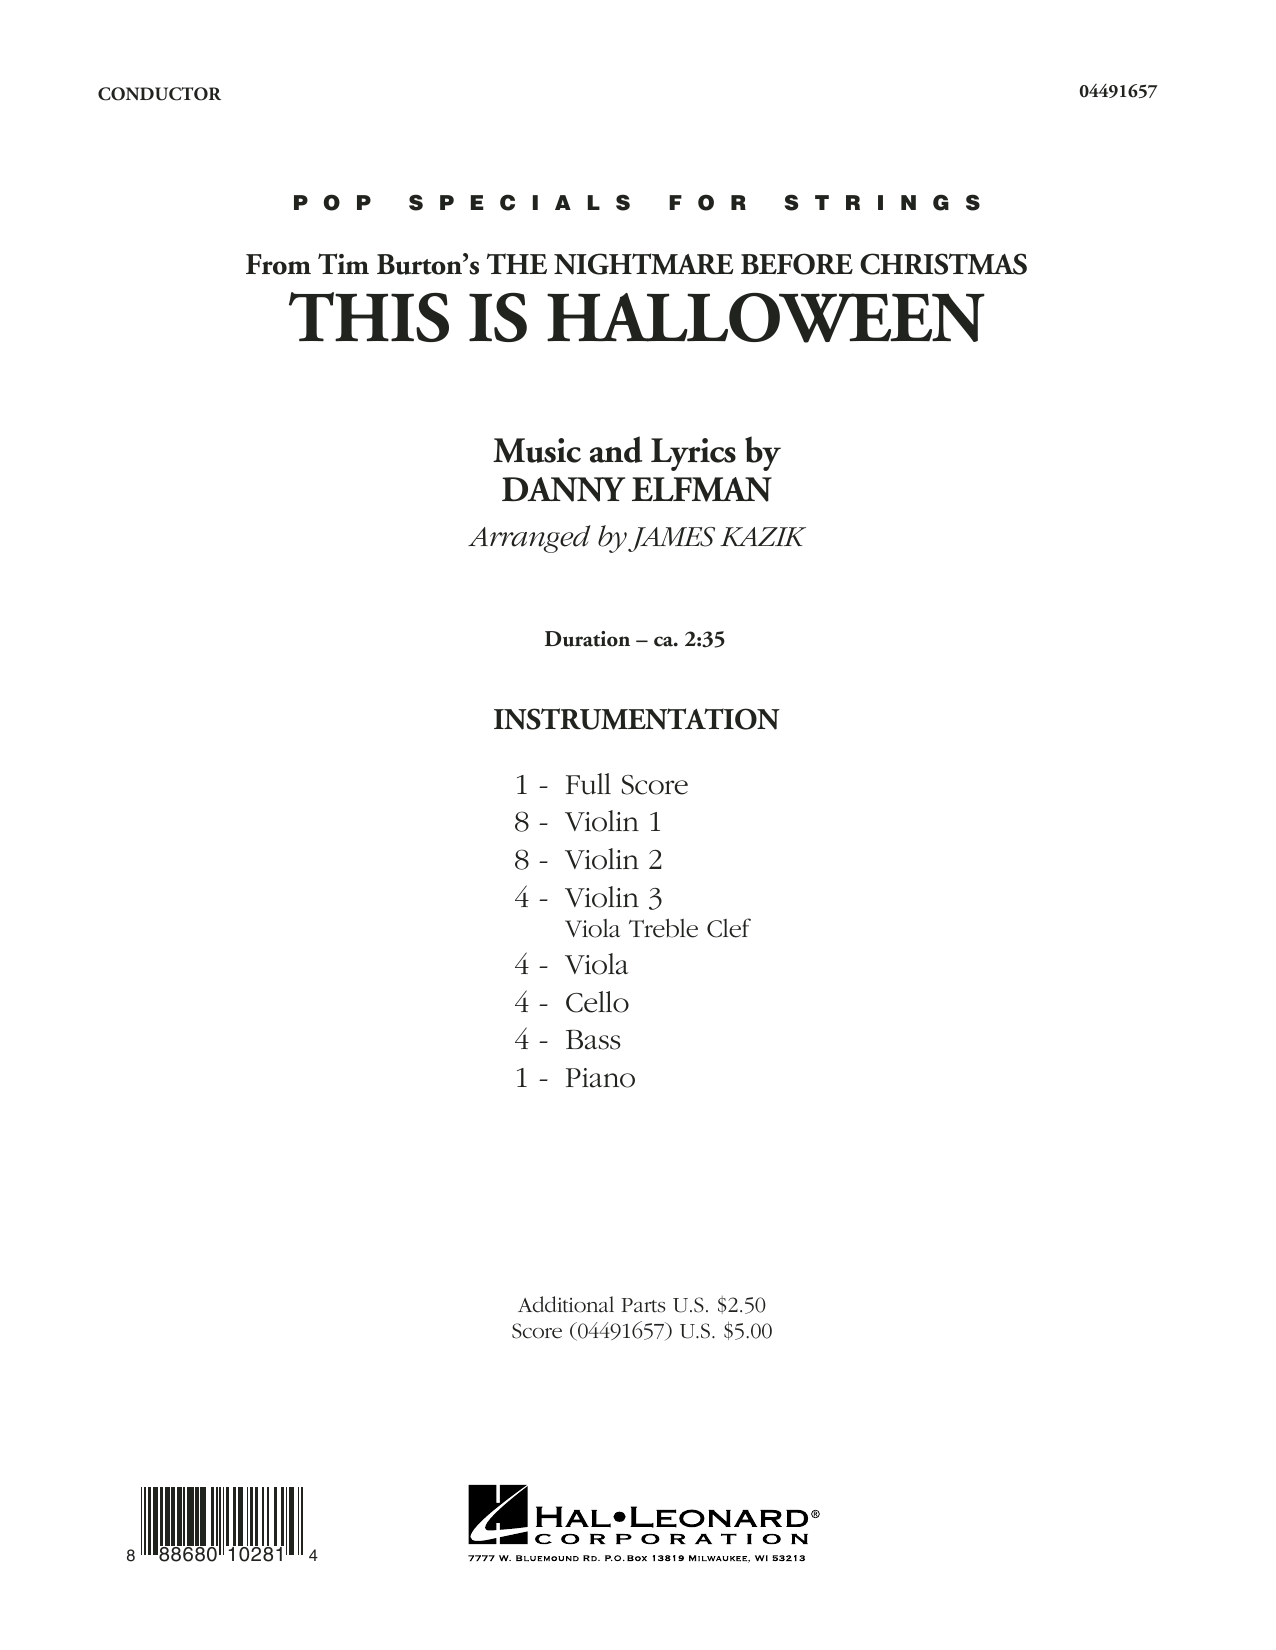 this is halloween conductor score full score - This Is Halloween Lyrics Nightmare Before Christmas